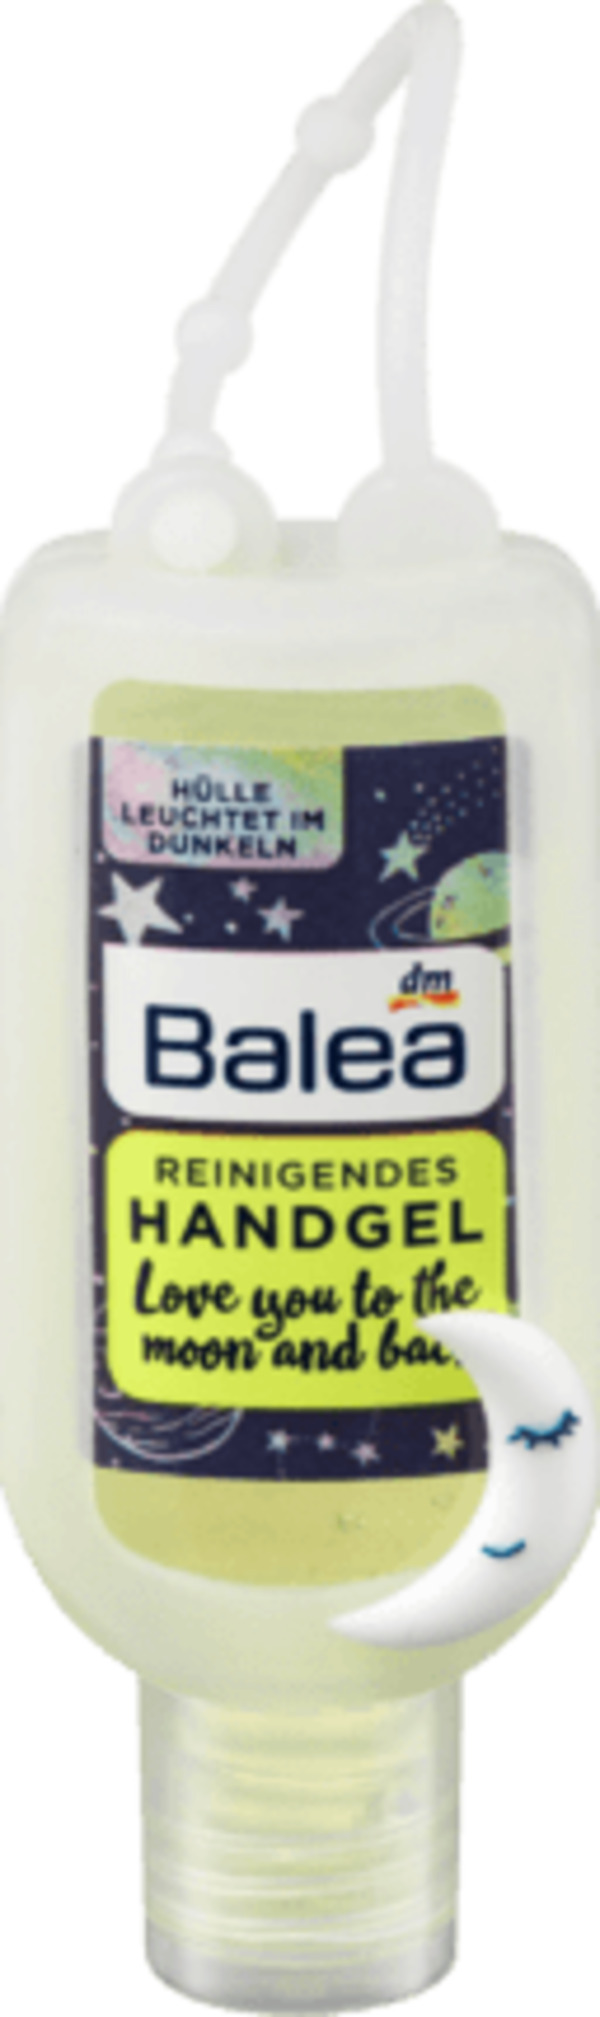 Balea Reinigendes Handgel Love you to the moon and back